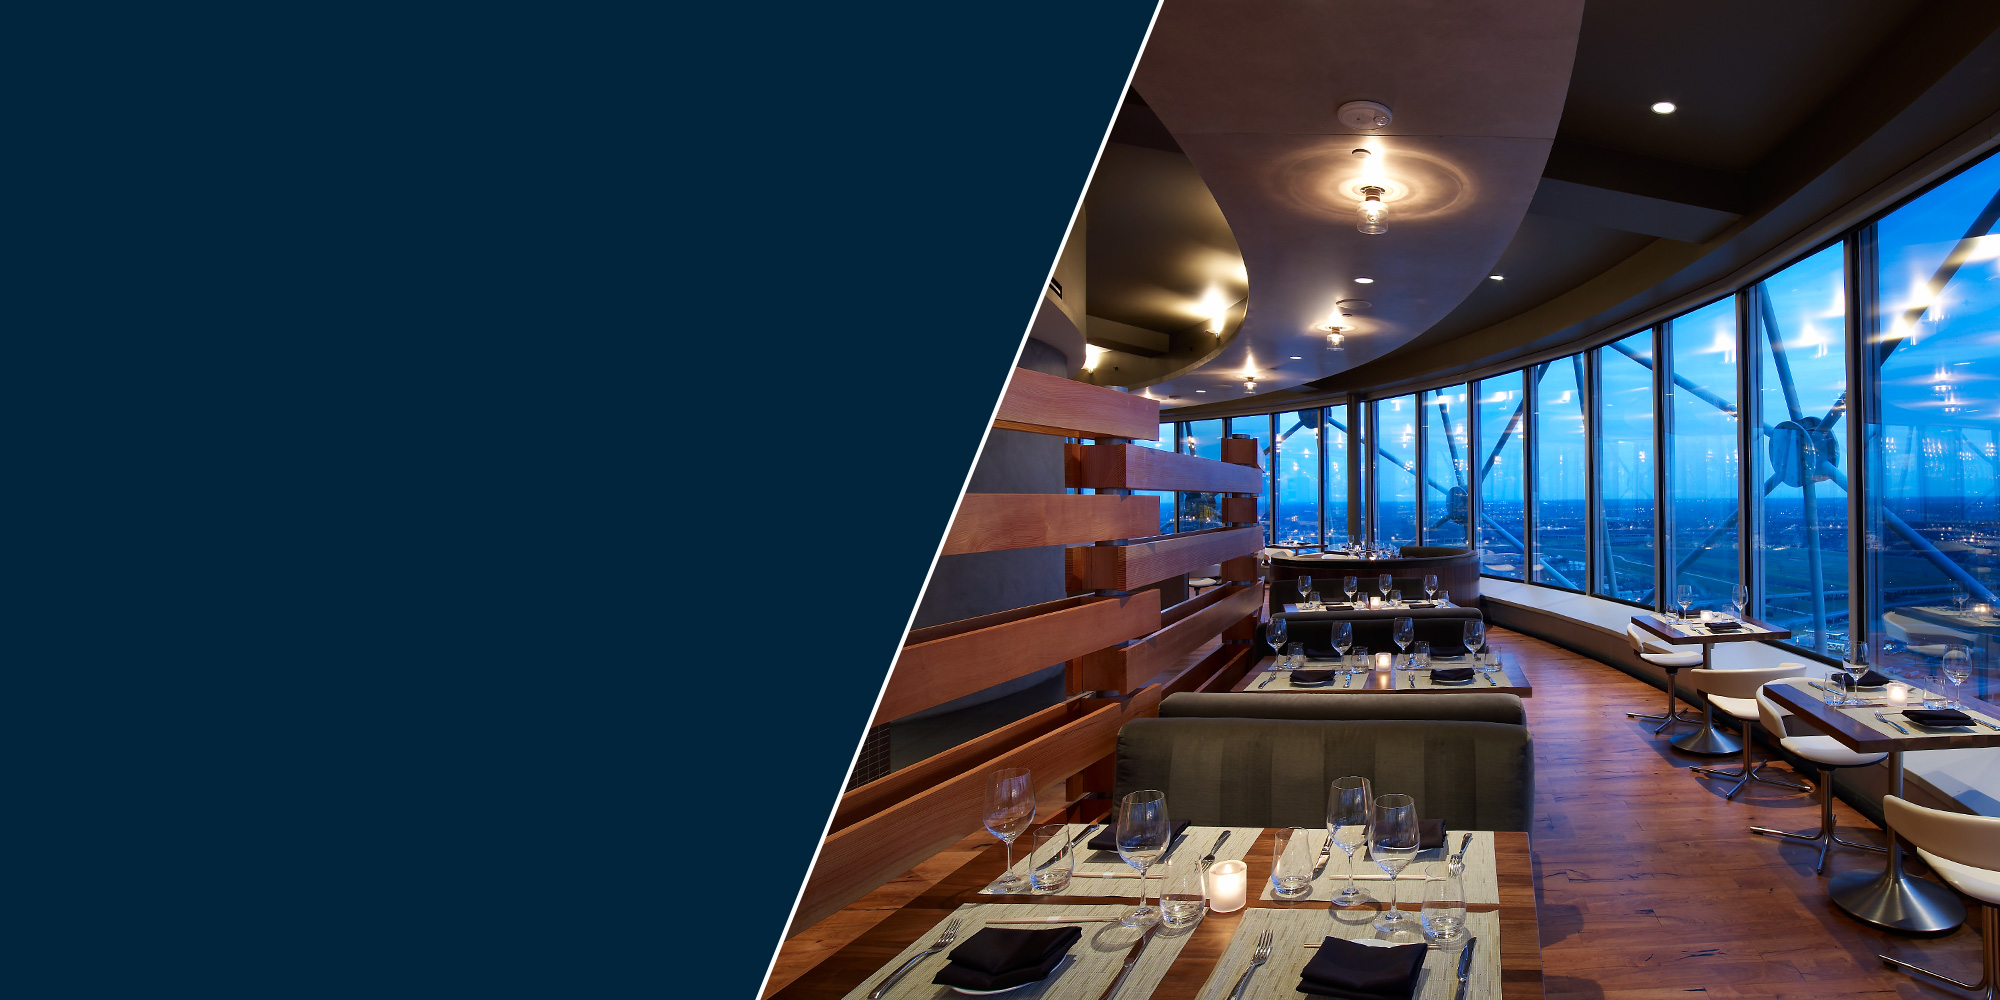 Unique event space for private dinner parties